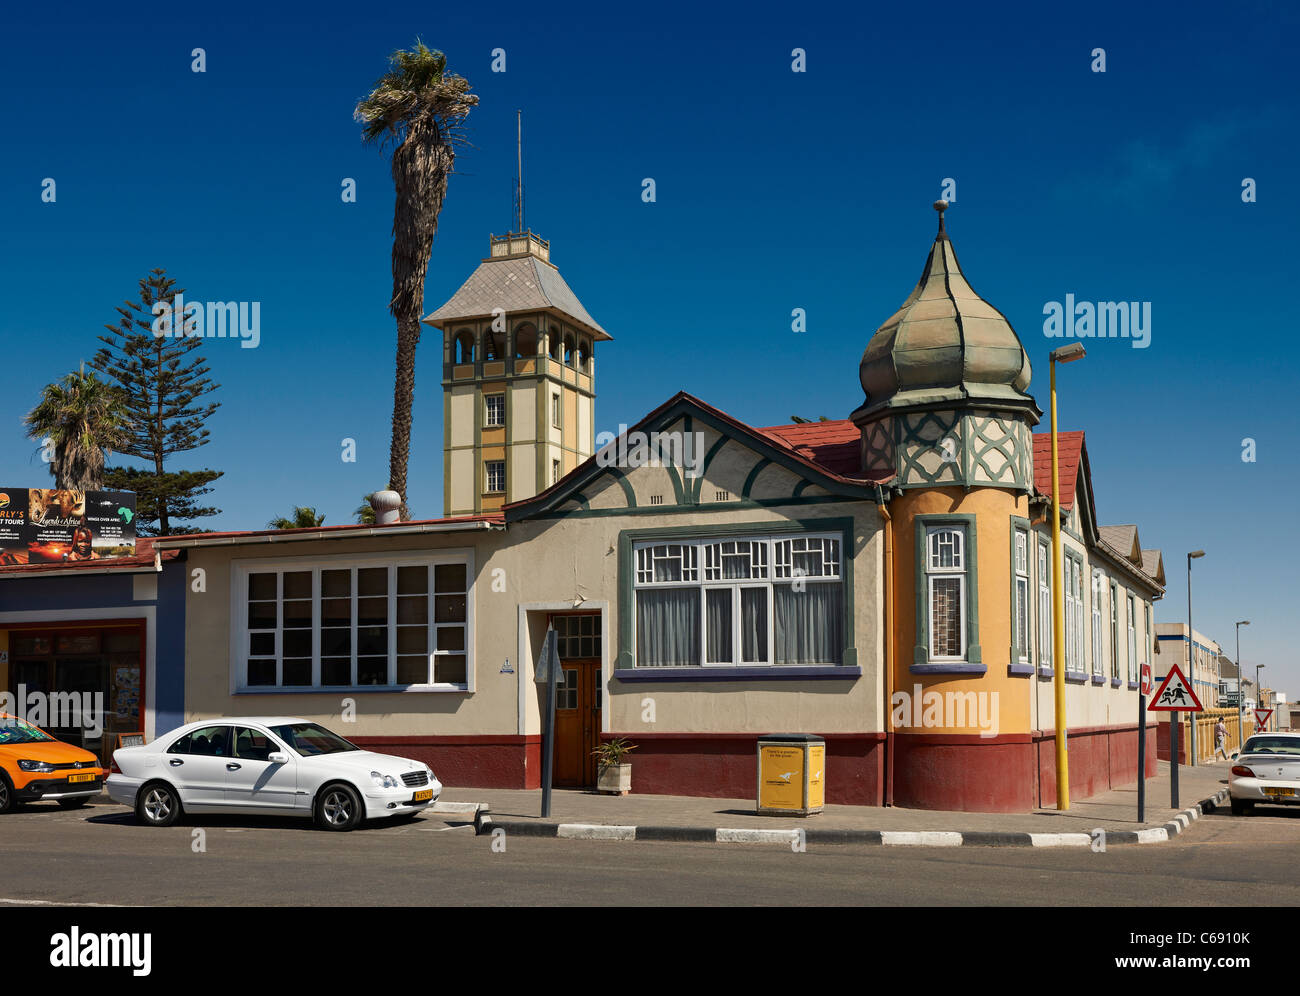 colorful historical building from German colonial period at main road, Swakopmund, Namibia, Africa - Stock Image